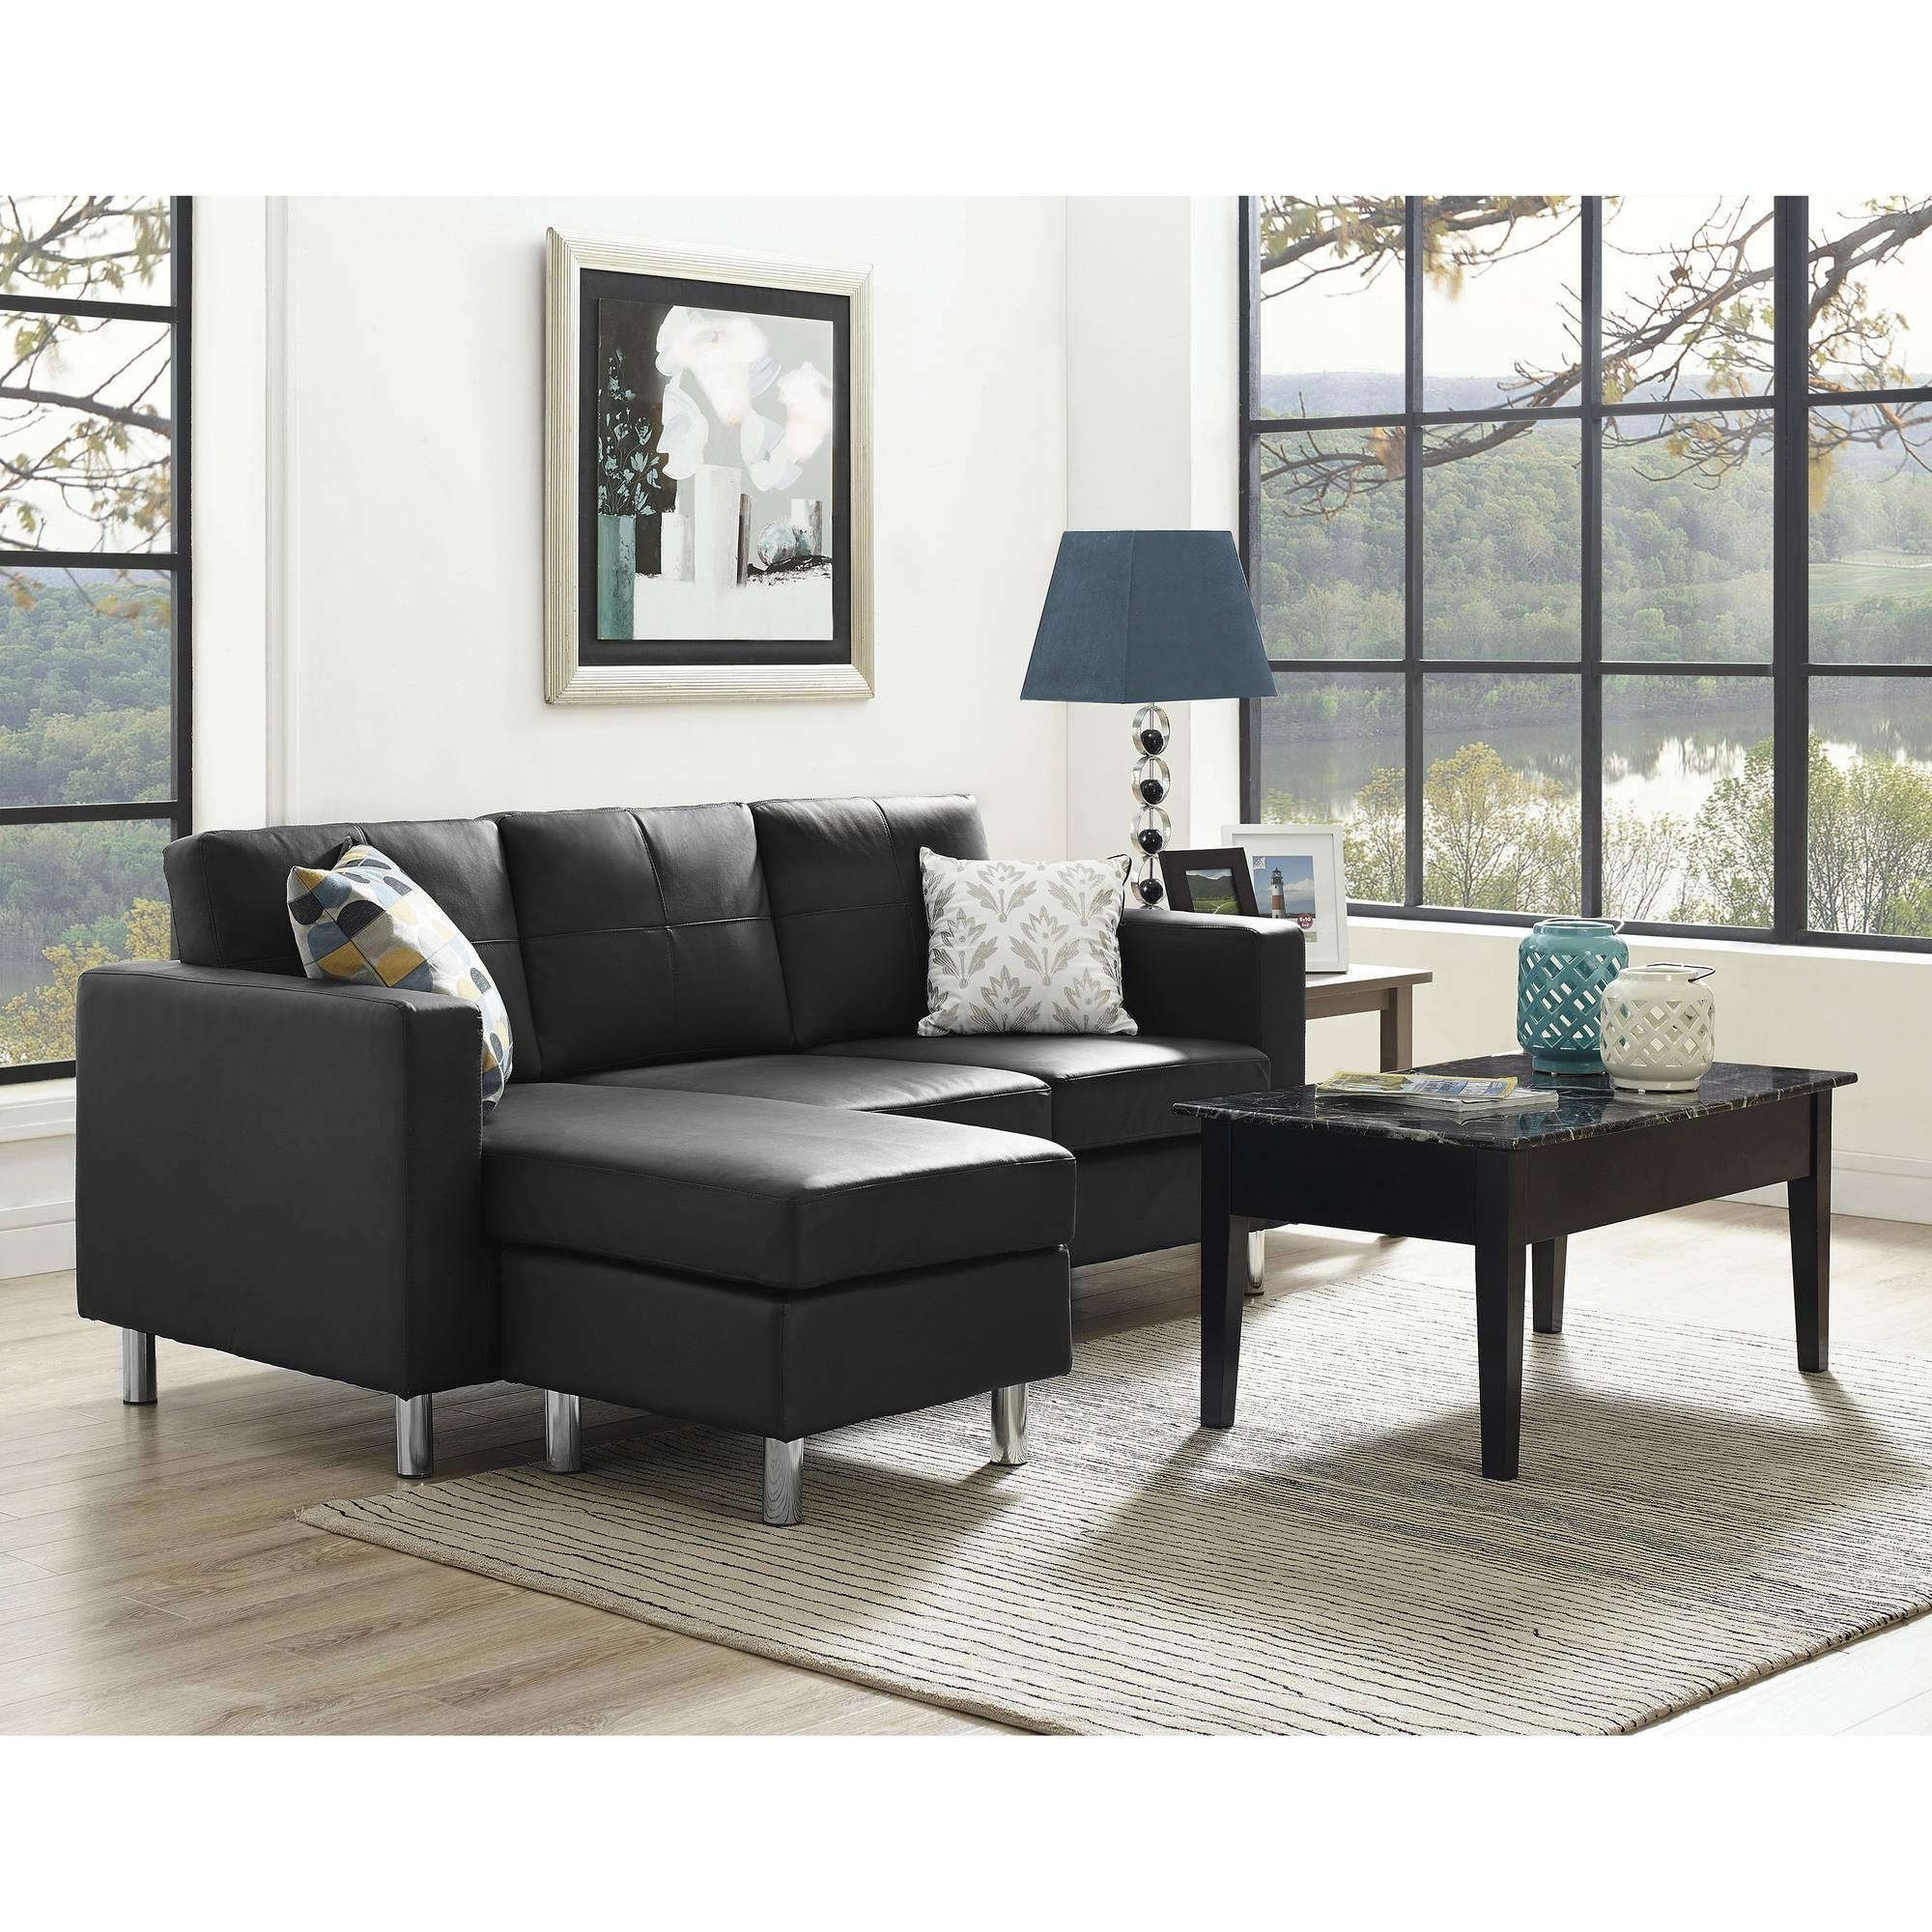 Dorel Living Small Spaces Configurable Sectional Sofa, Multiple Inside Small Black Sofas (Image 3 of 20)